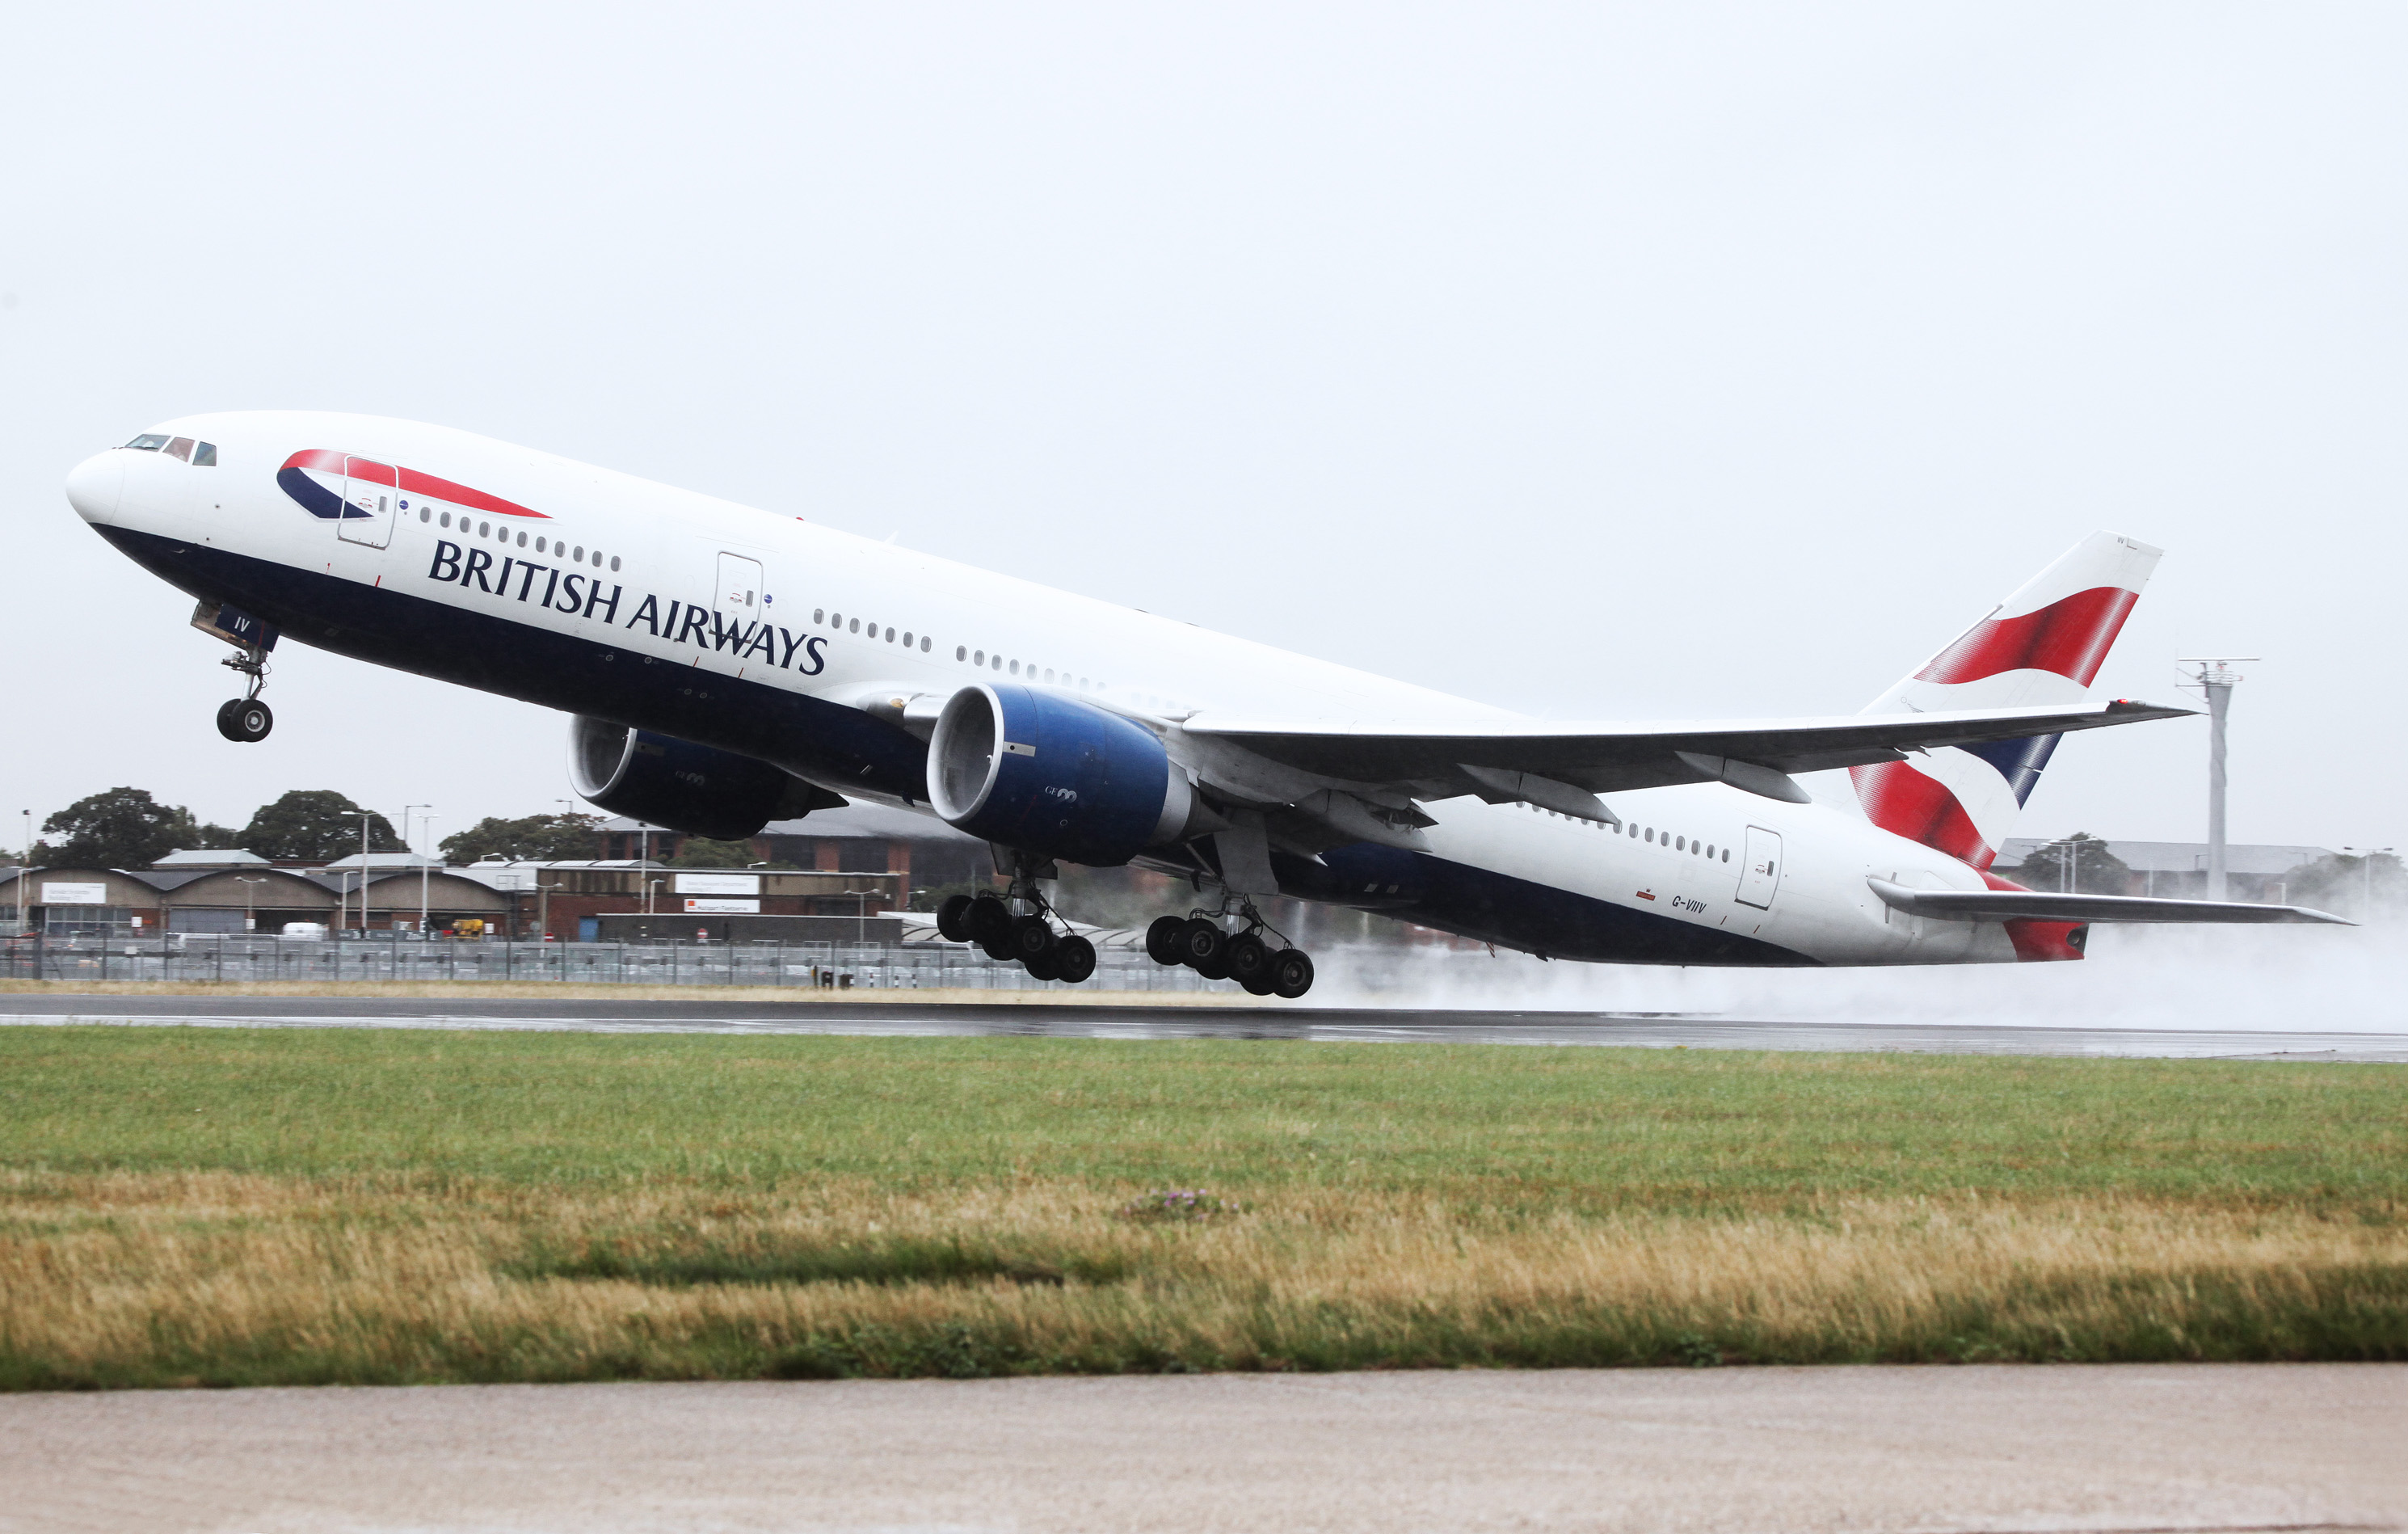 BA announces increases to its short-haul flight schedule from Heathrow